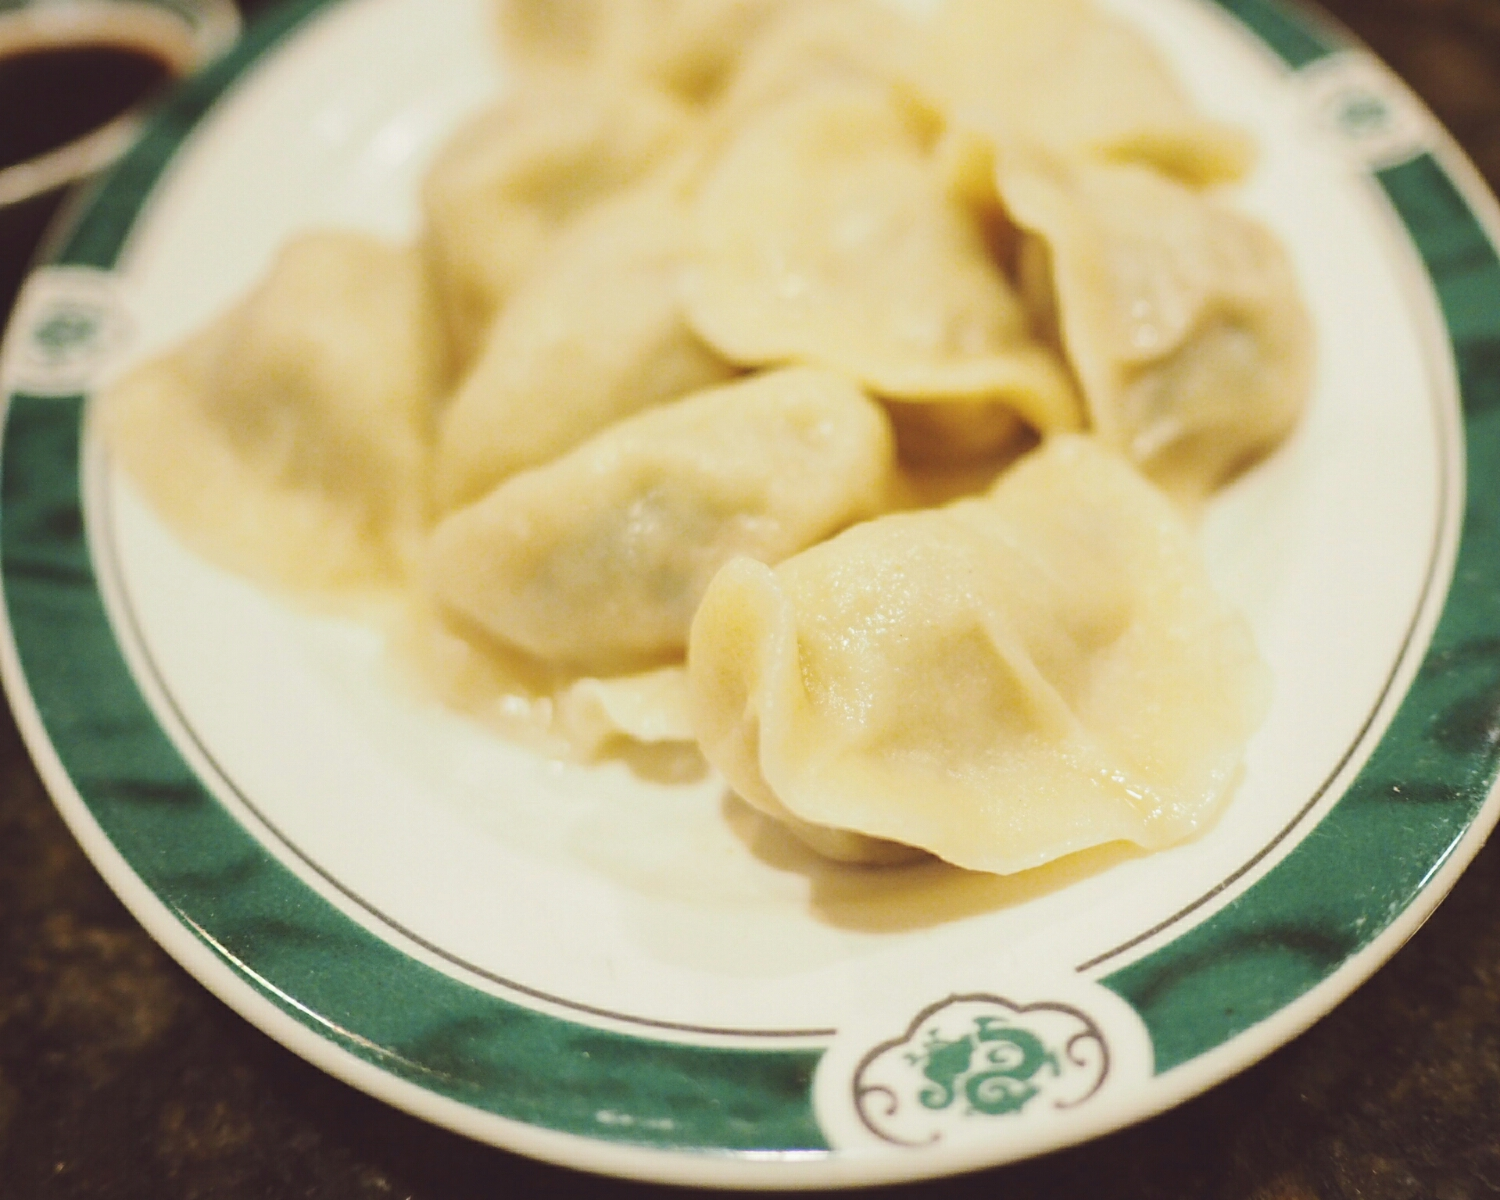 fresh hand-made dumplings, with pork and chinese chives.